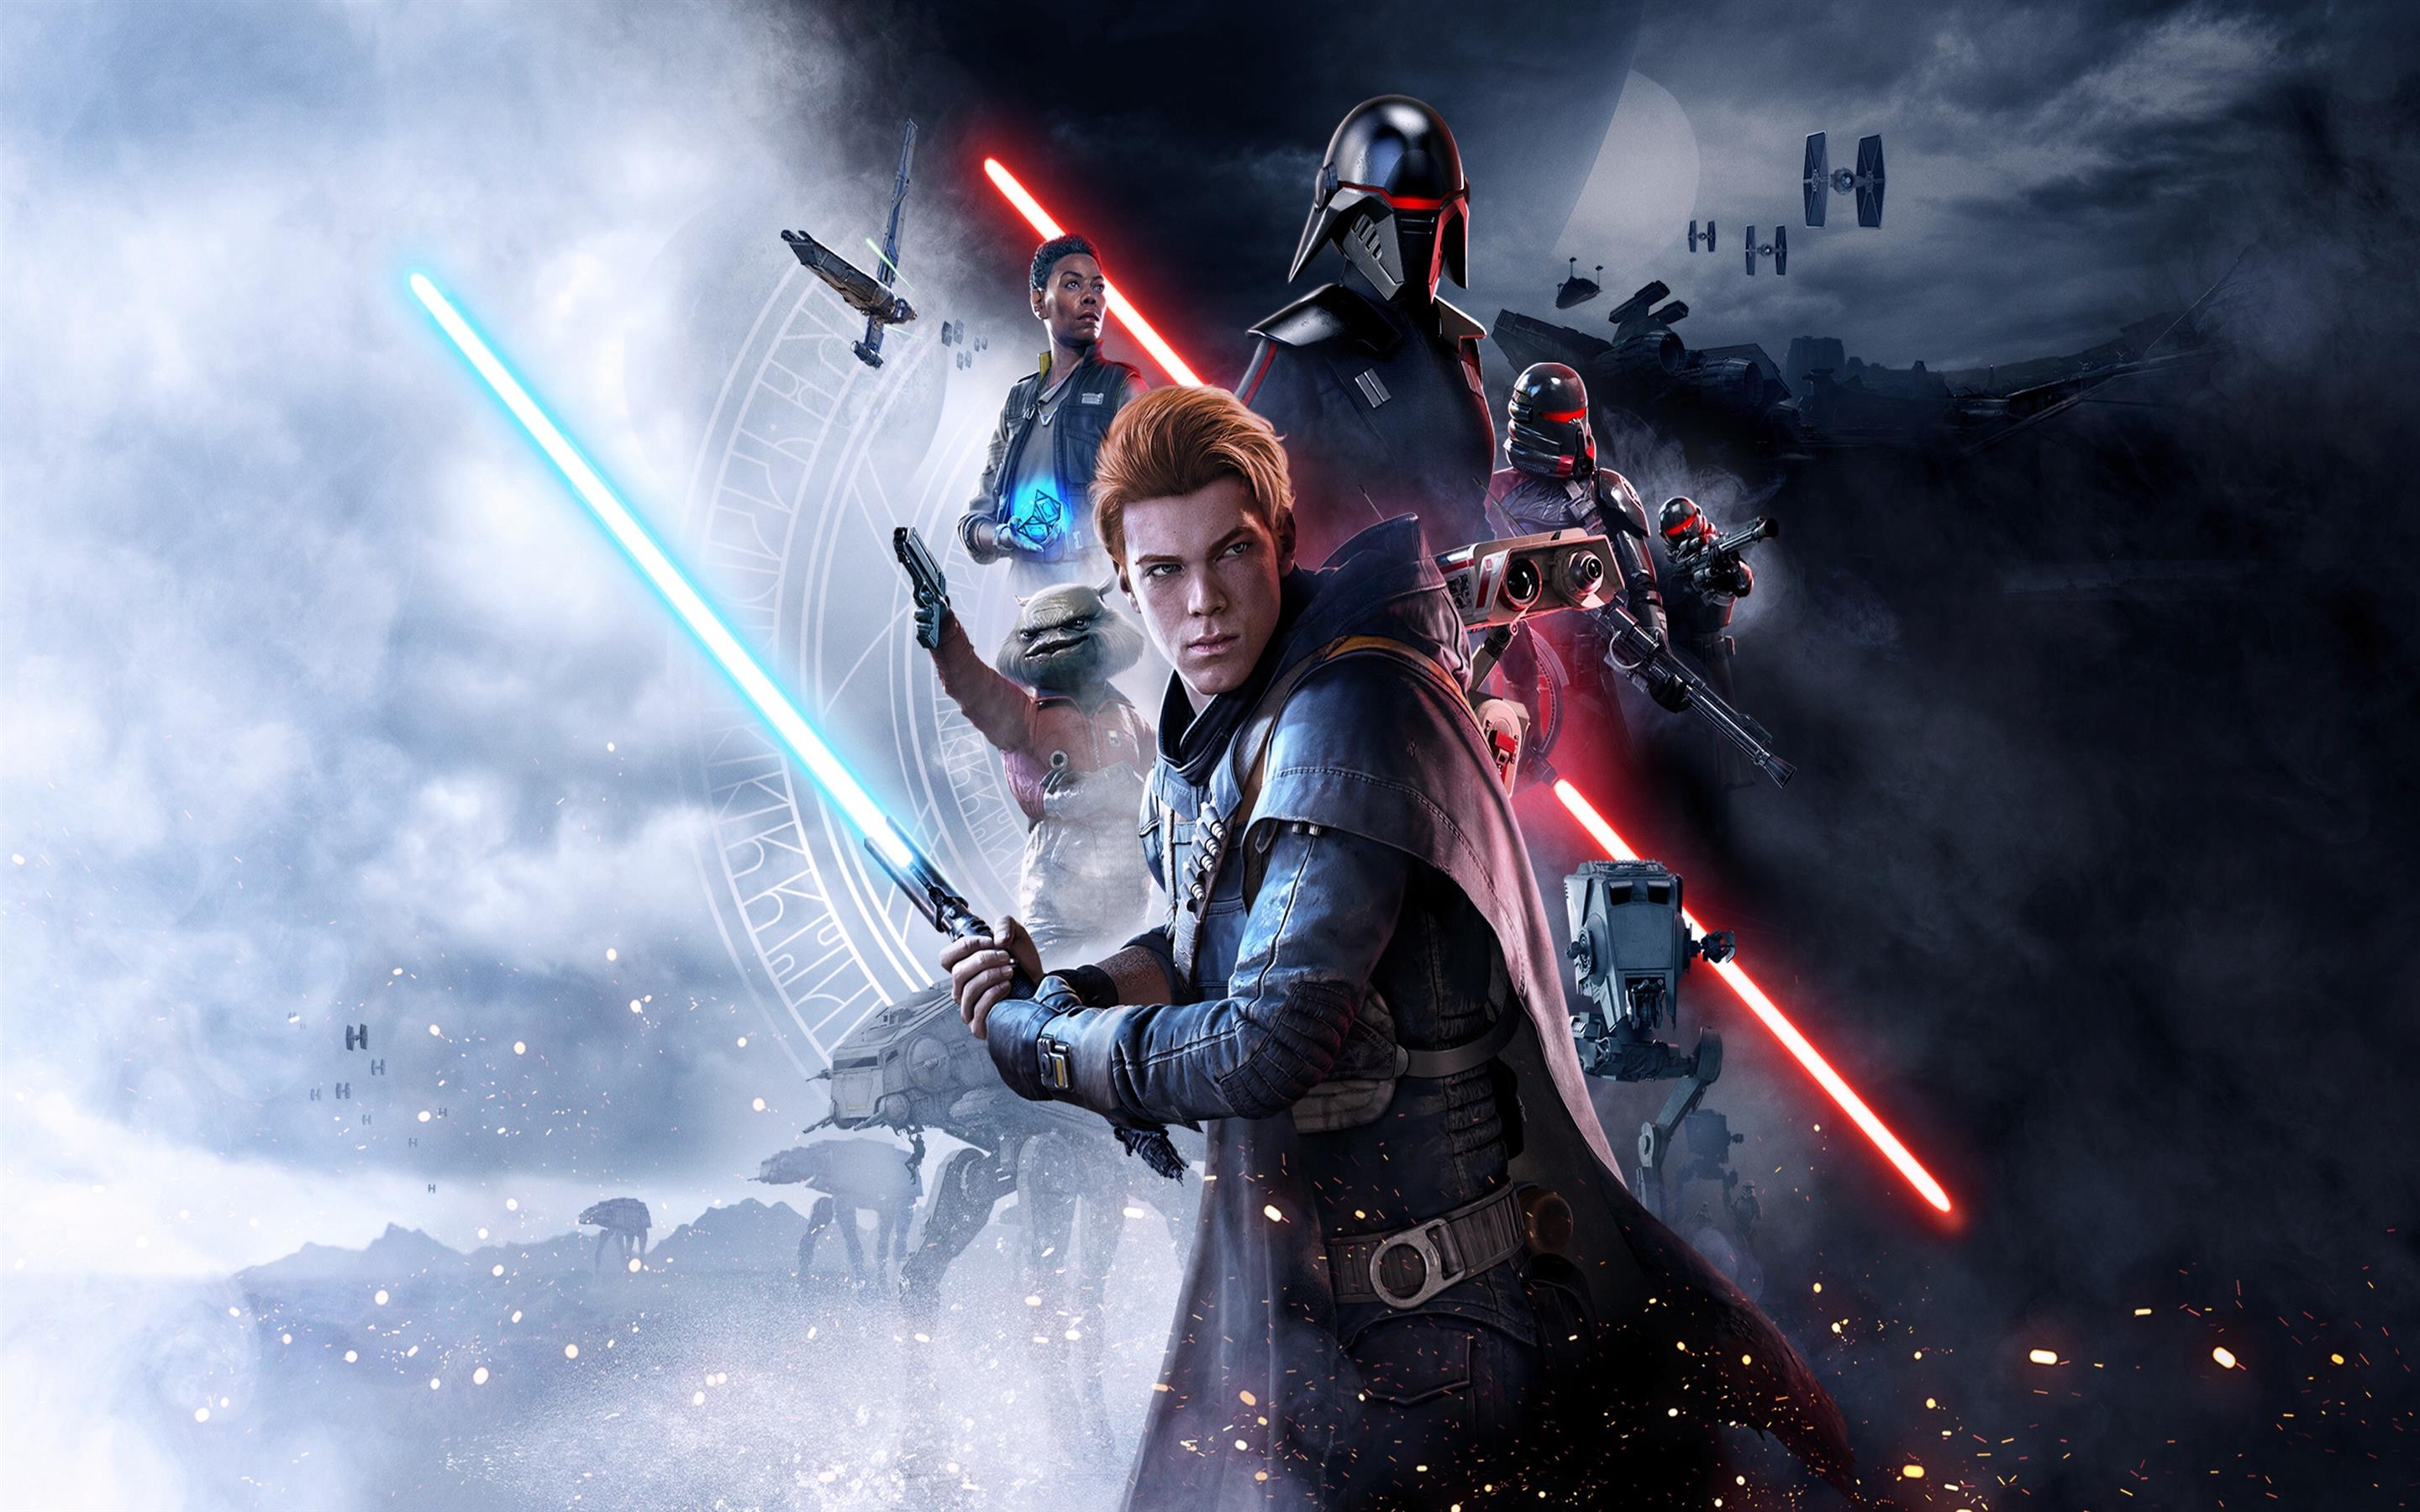 2880x1800 Star Wars Jedi Fallen Order 2 Game Wallpaper